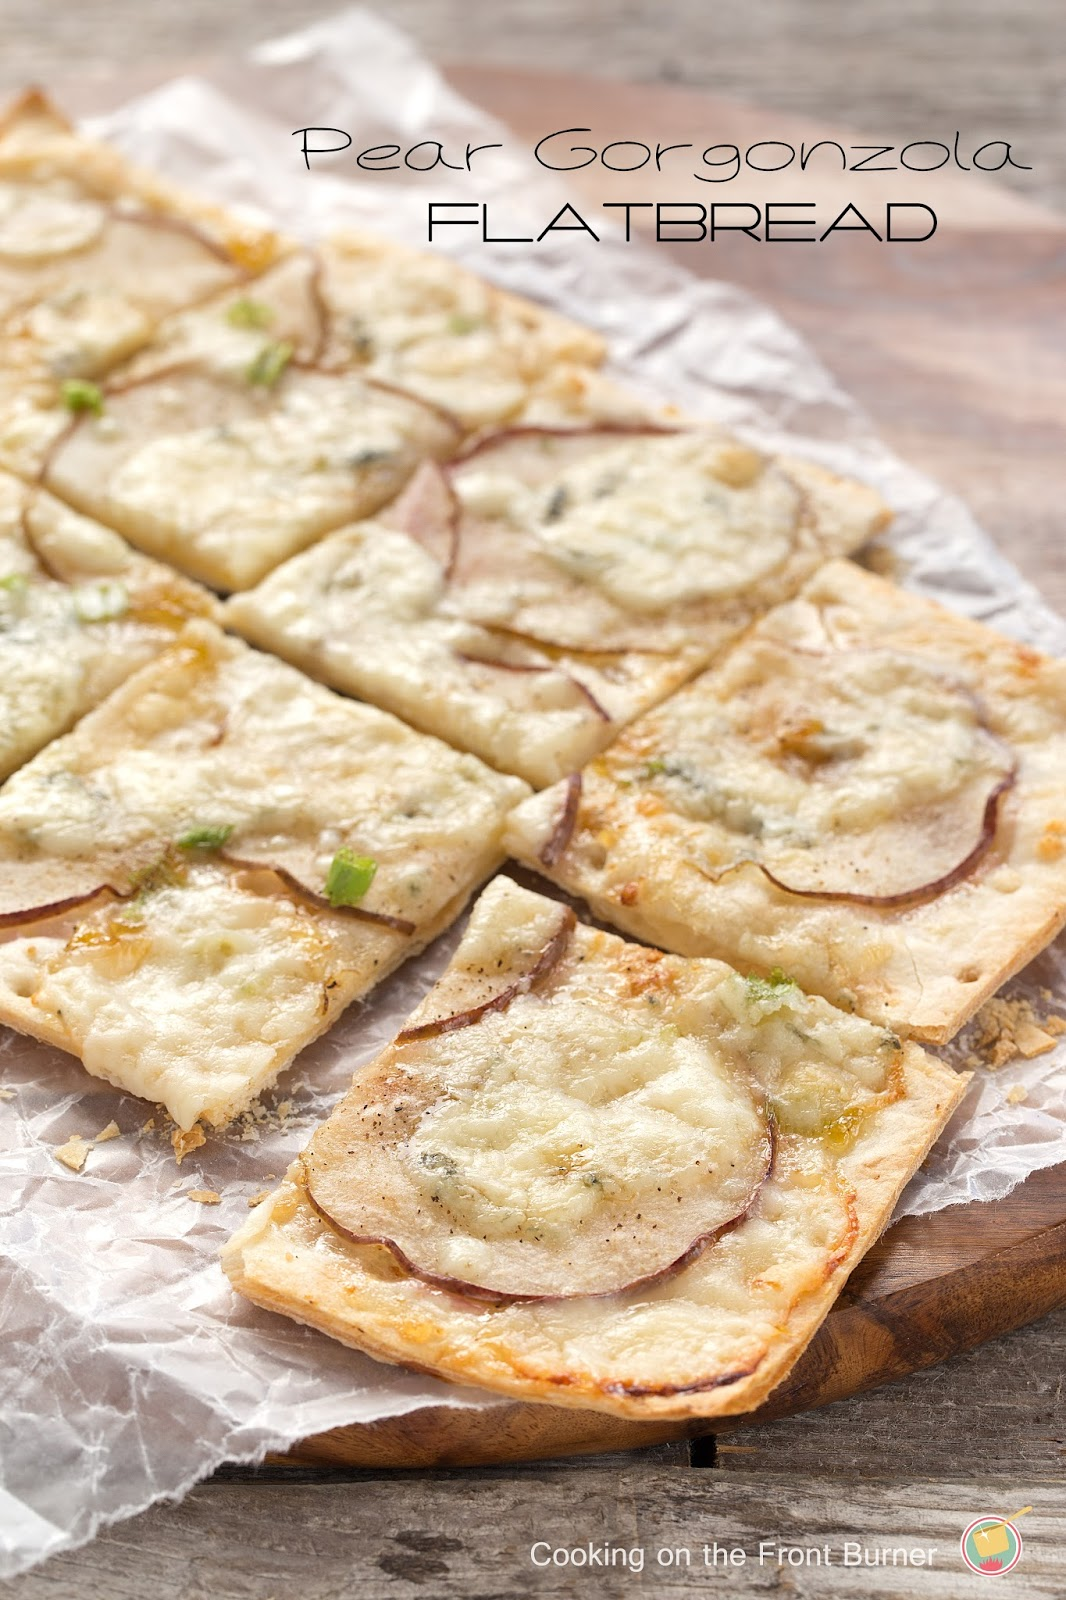 Pear Gorgonzola Flatbread by Cooking on the Front Burner